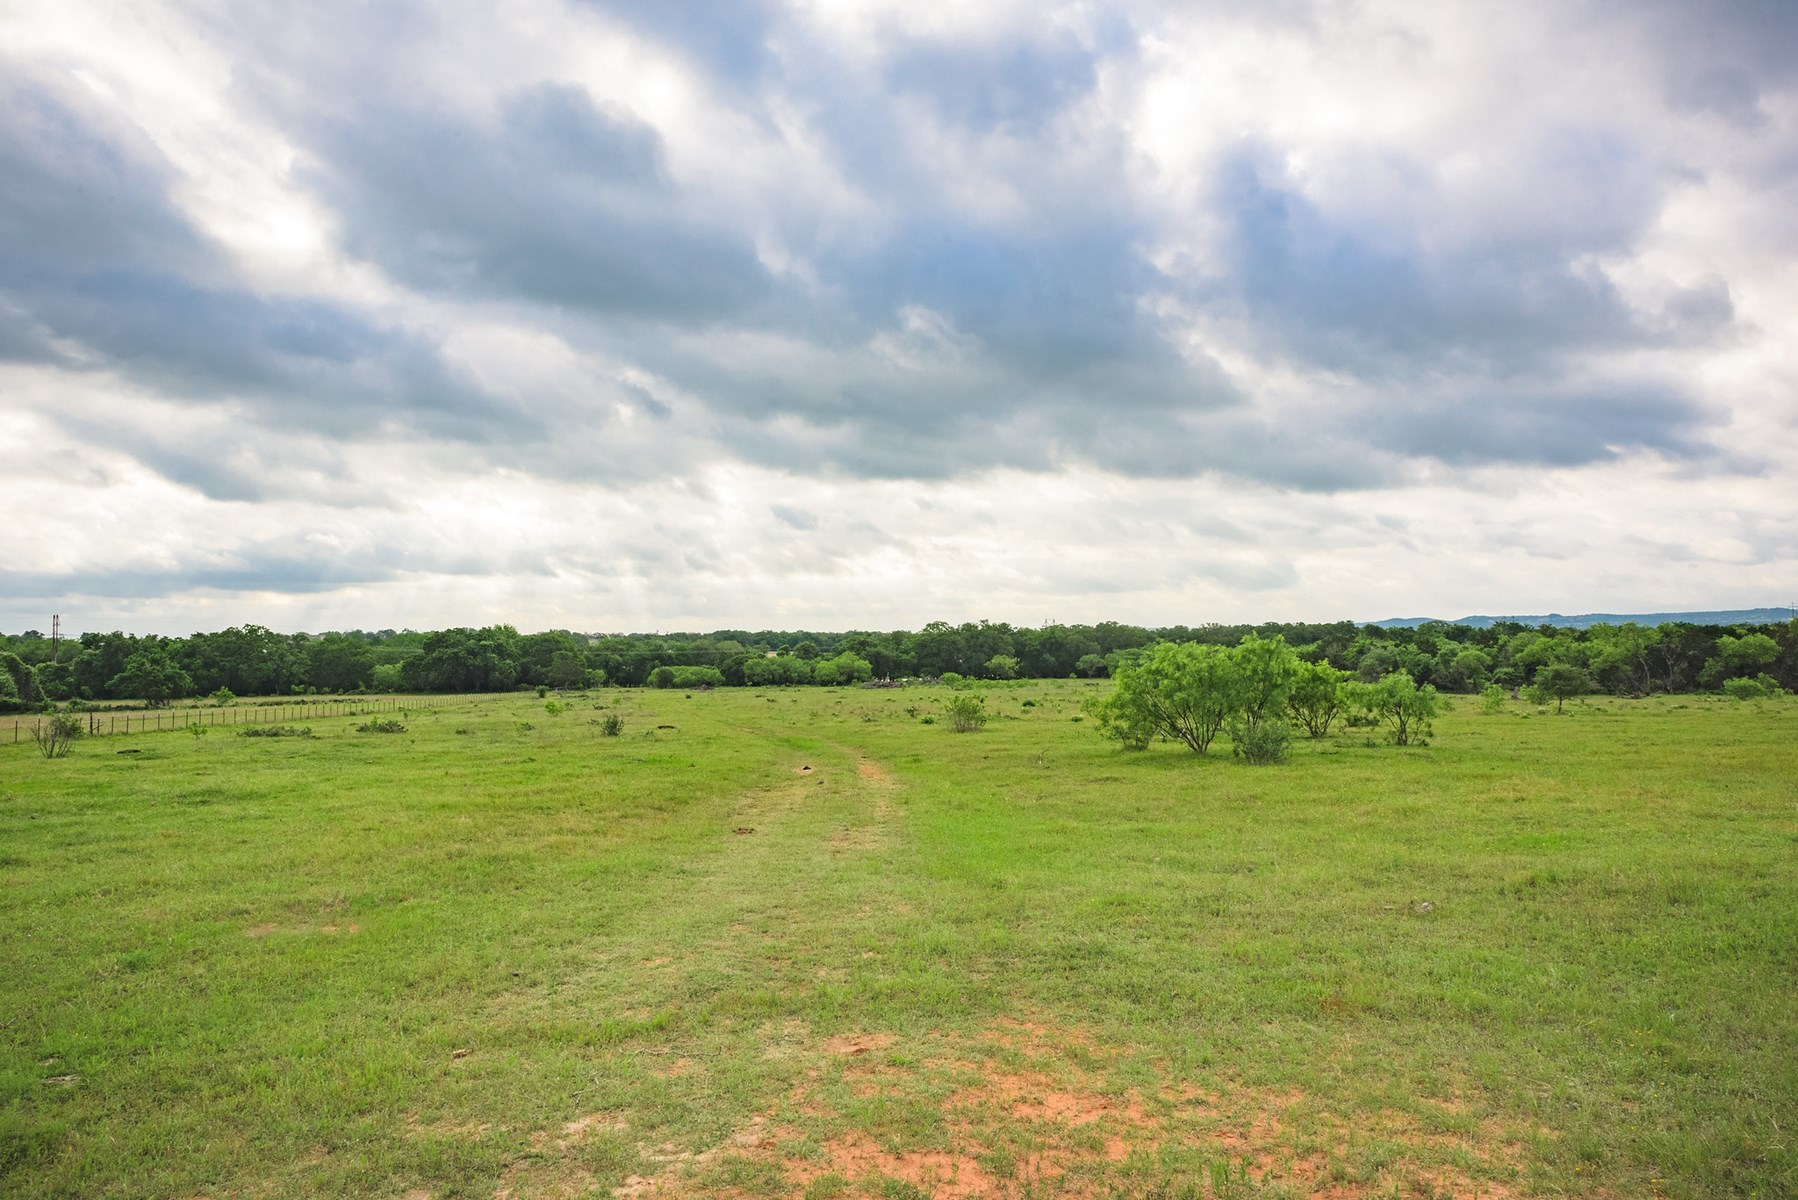 Farm, Ranch or Vineyard Land For Sale in Fredericksburg, TX